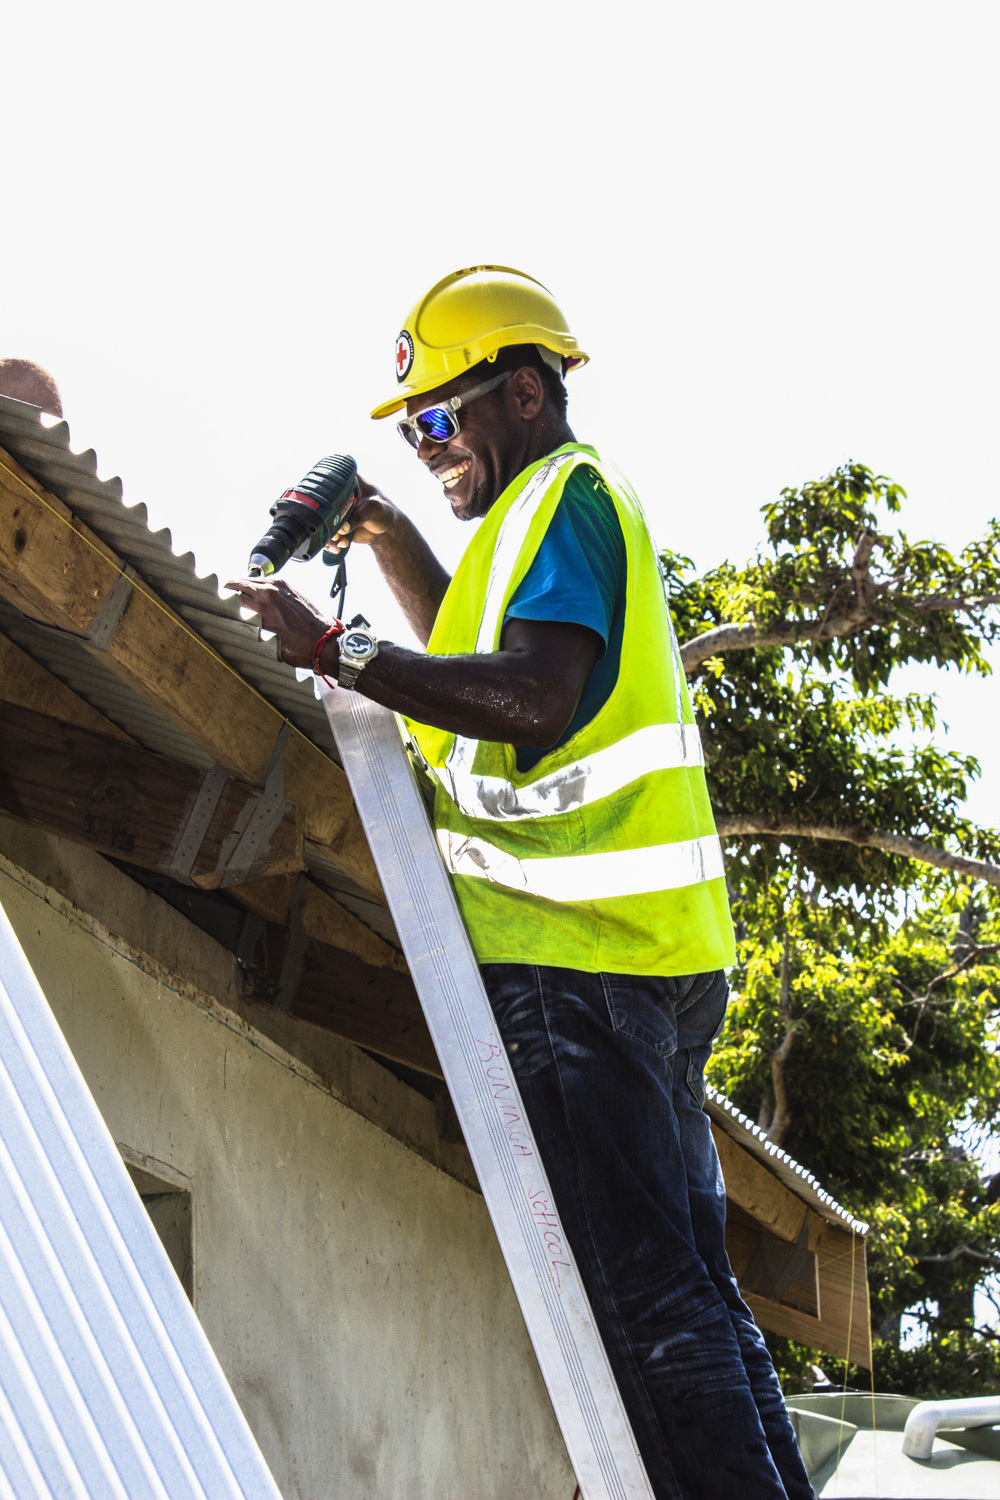 Head Teacher Joe Simeon, 28, Pitches in to help rebuild the school roof in Buninga. Source: Edwina Yeates, Vanuatu Red Cross